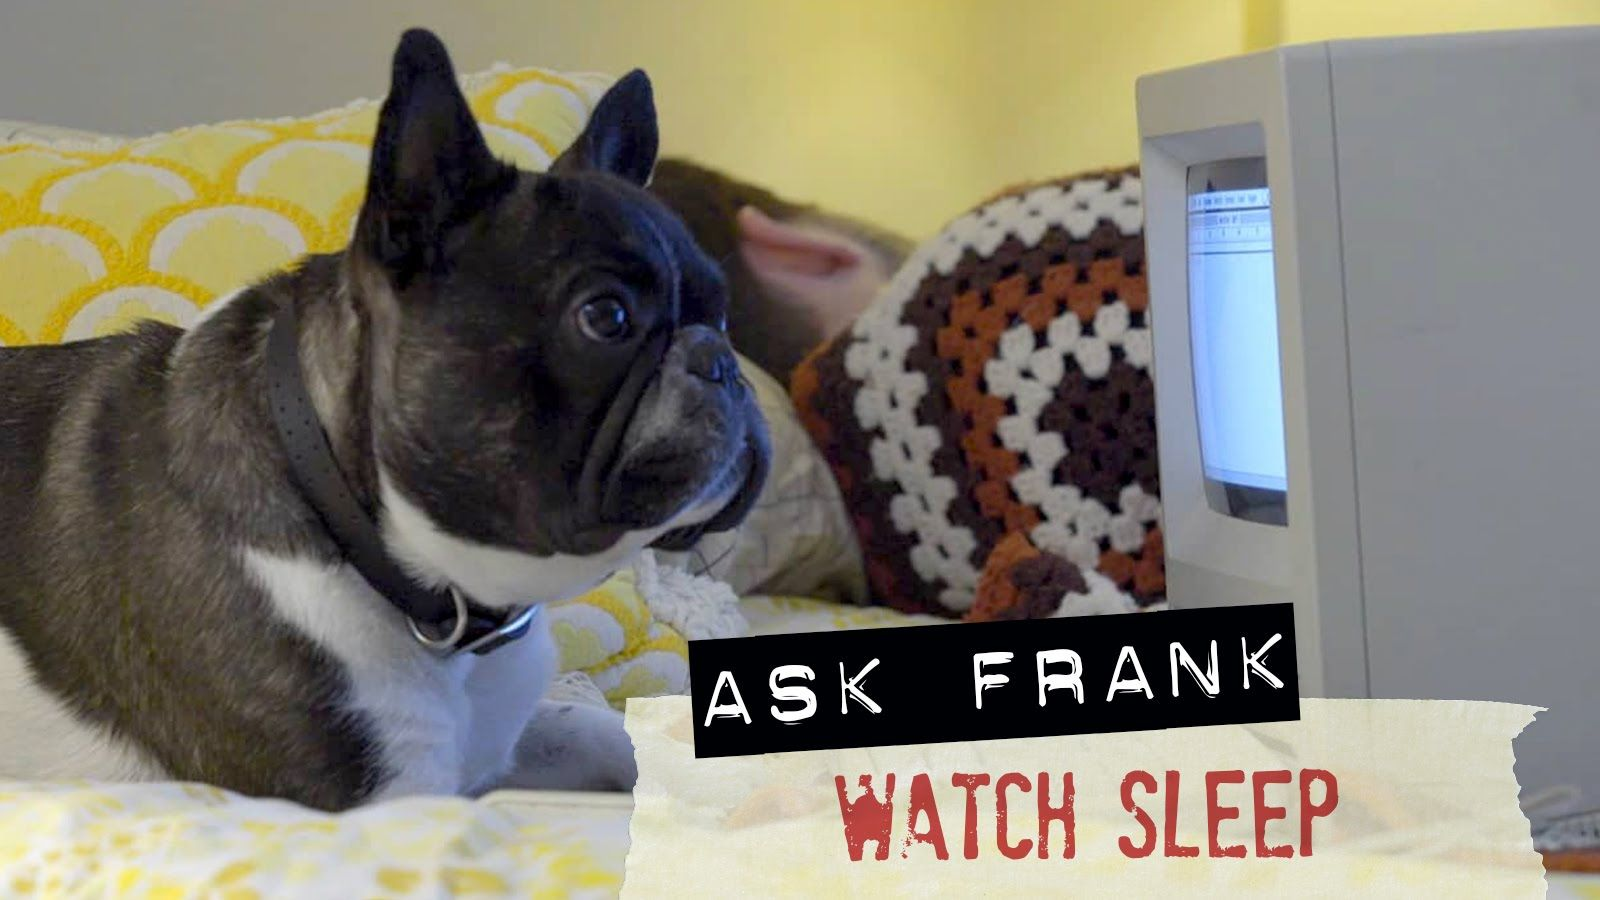 Watch Sleep - #023 Ask Frank: Advice for Dogs. By a Dog.